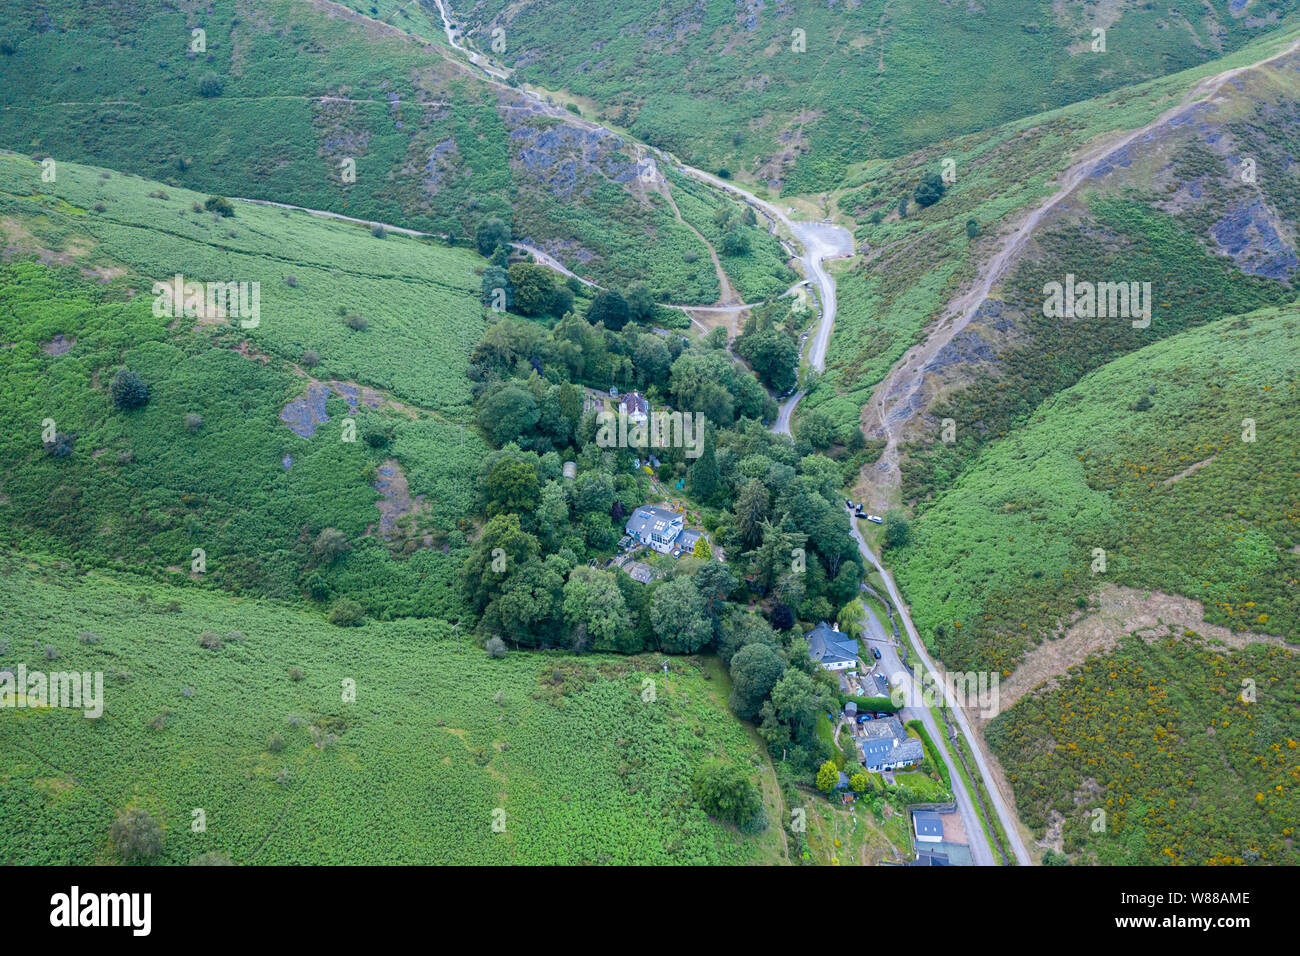 Aerial shoot over green slopes of Carding Mill Valley in Church Stretton, Shropshire, UK Stock Photo